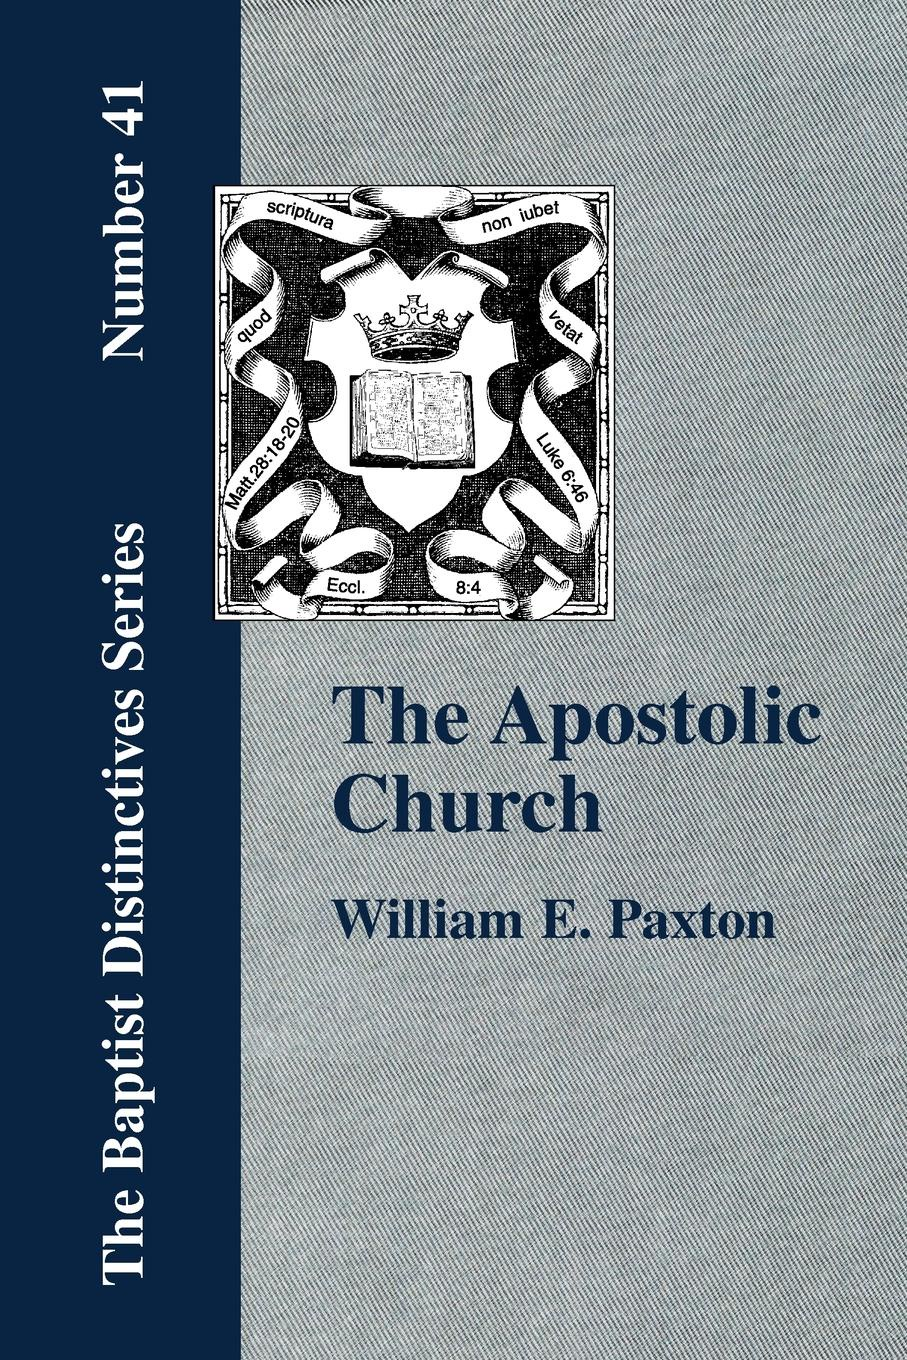 W. E. Paxton The Apostolic Church; Being an Inquiry into the Constitution and Polity of that Visible Organization Set Up by Jesus Christ and His Apostles william e arnal jesus and the village scribes